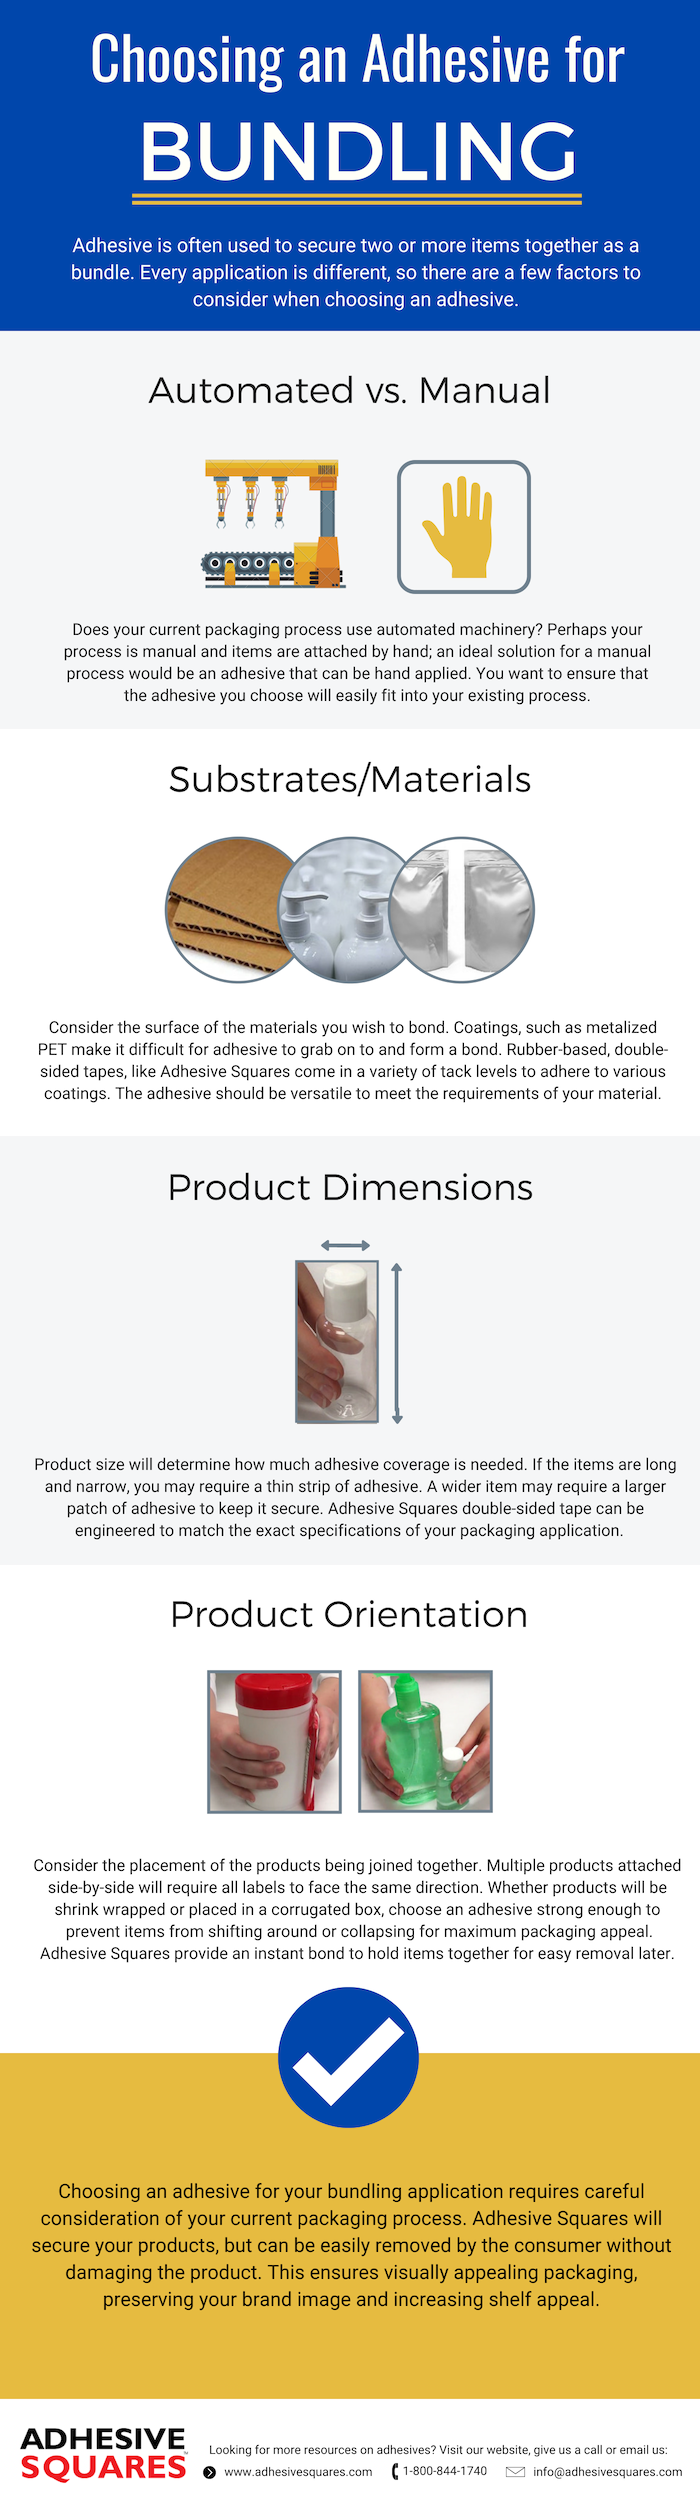 How to Choose an Adhesive: Multi-Pack Solutions